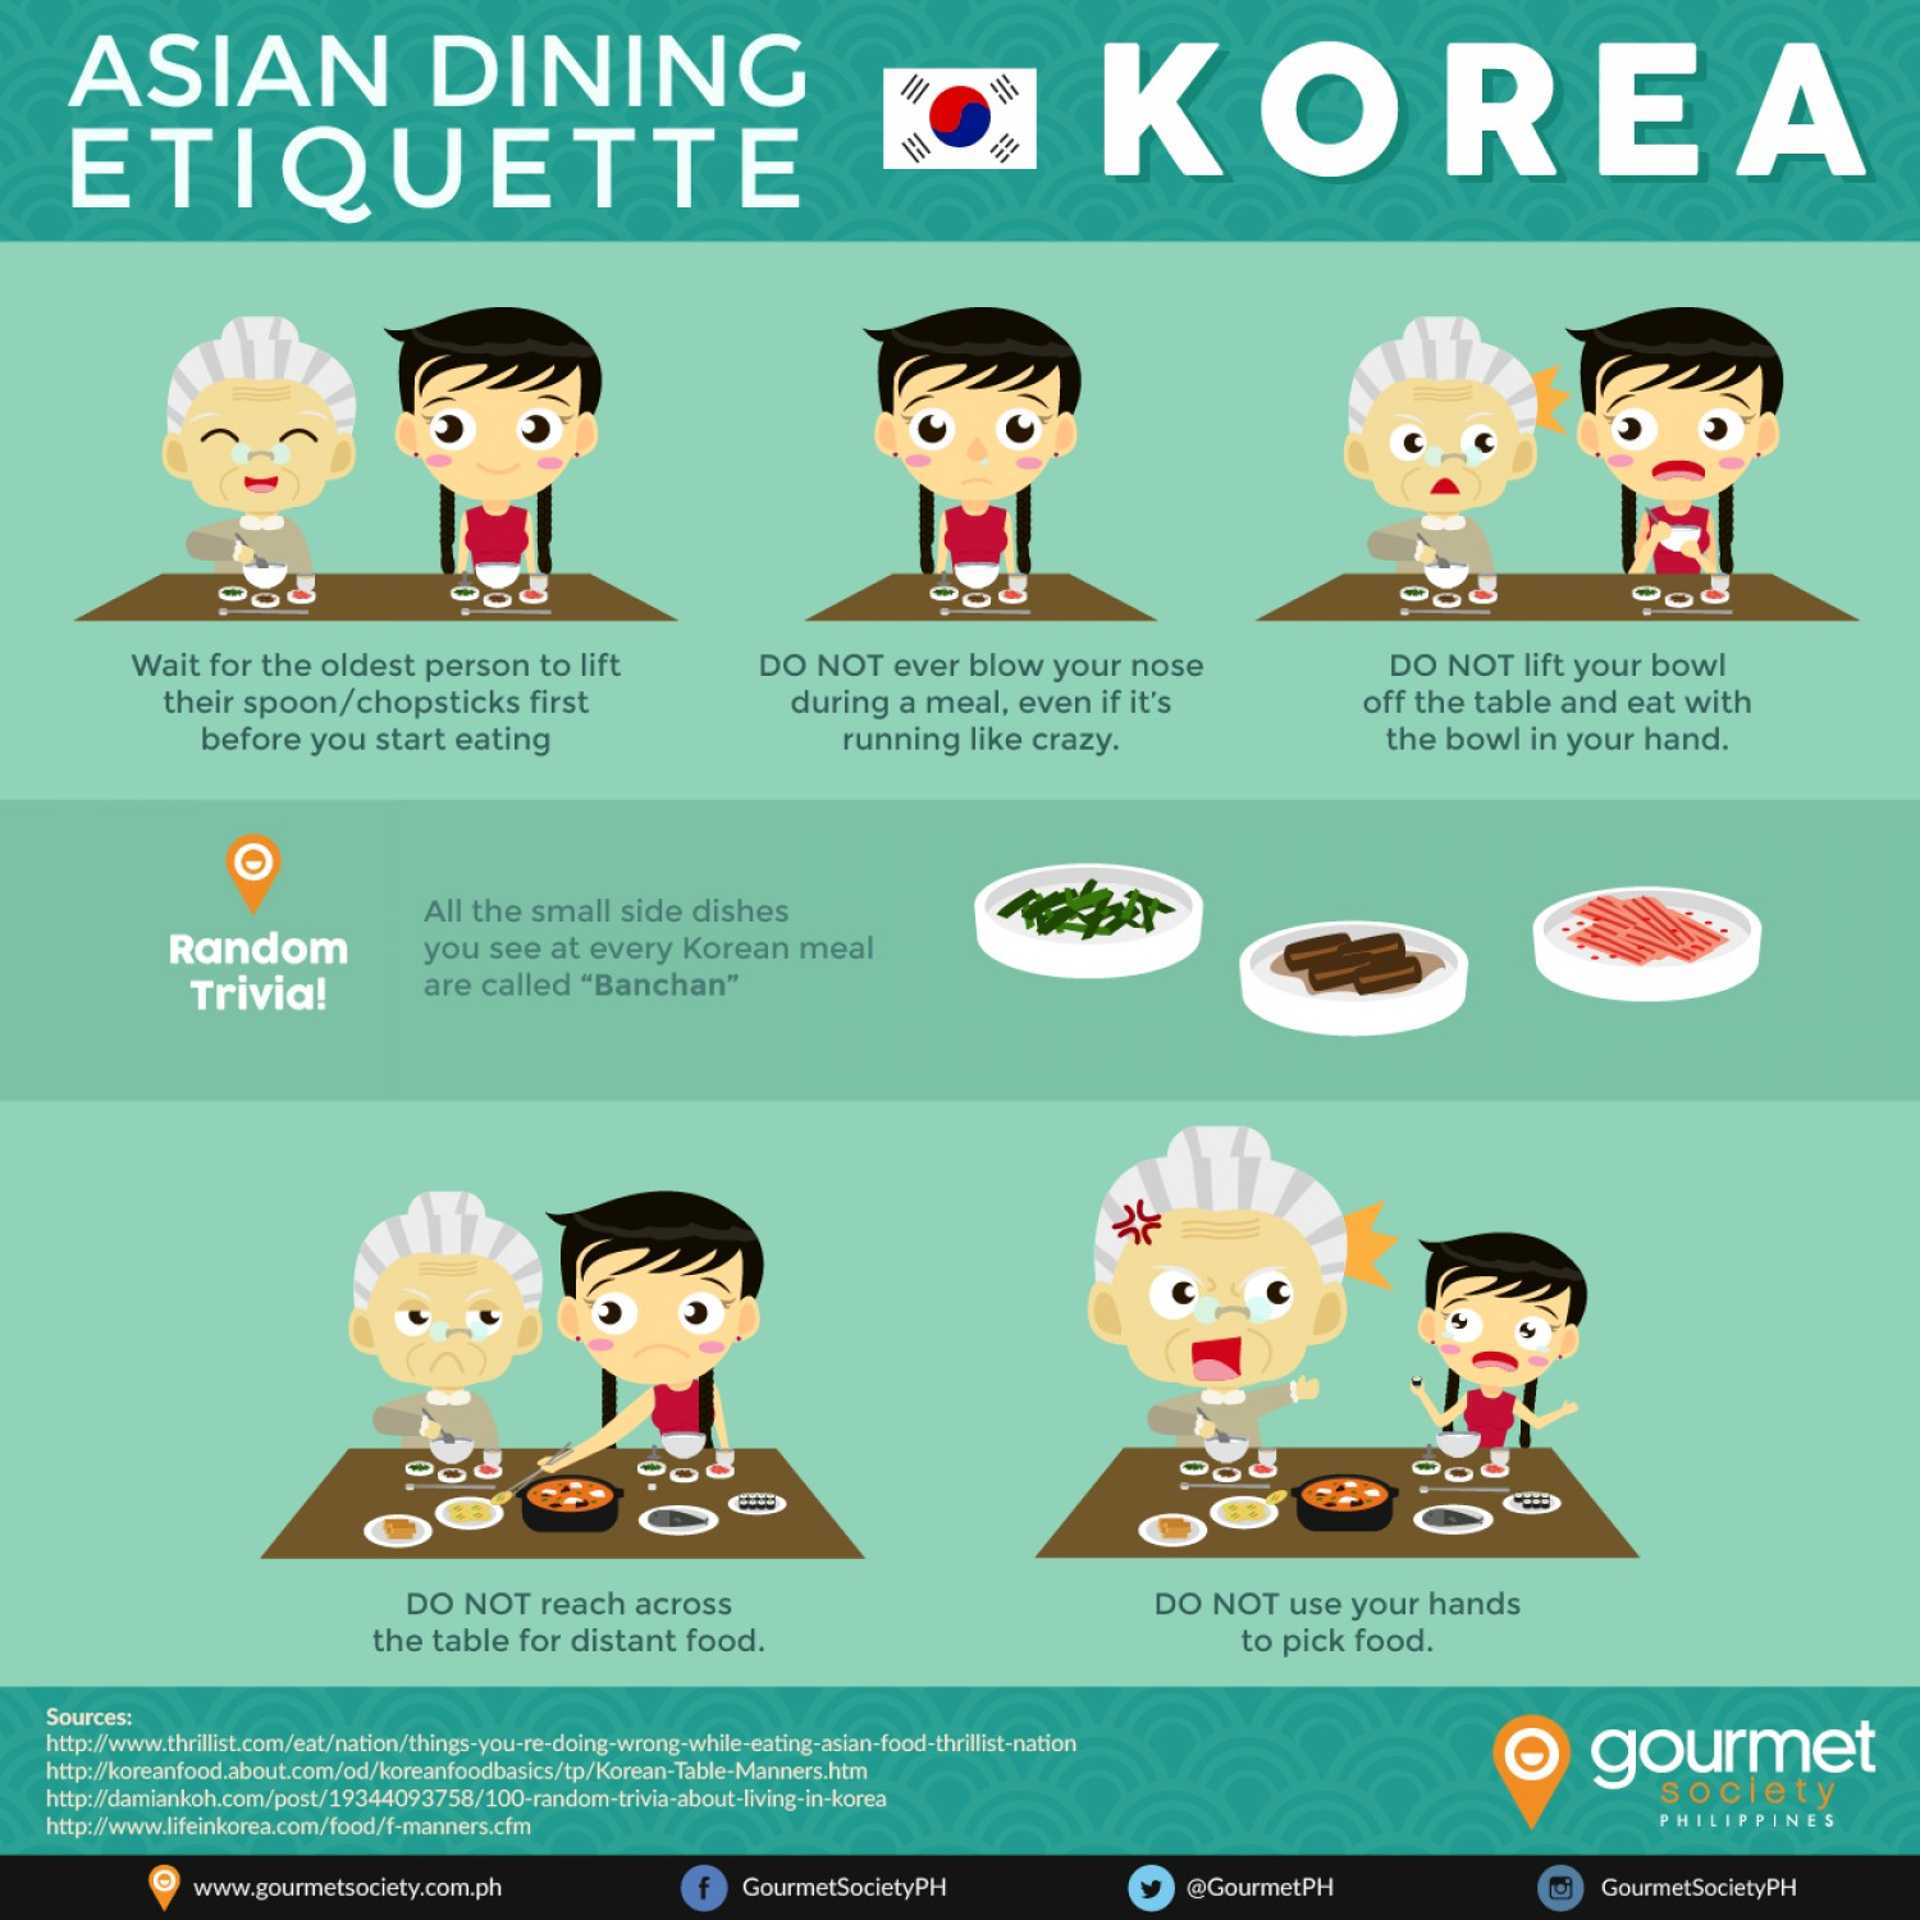 asian-dining-etiquette-series-dining-in-korea_550bb6ef546e1_w1500